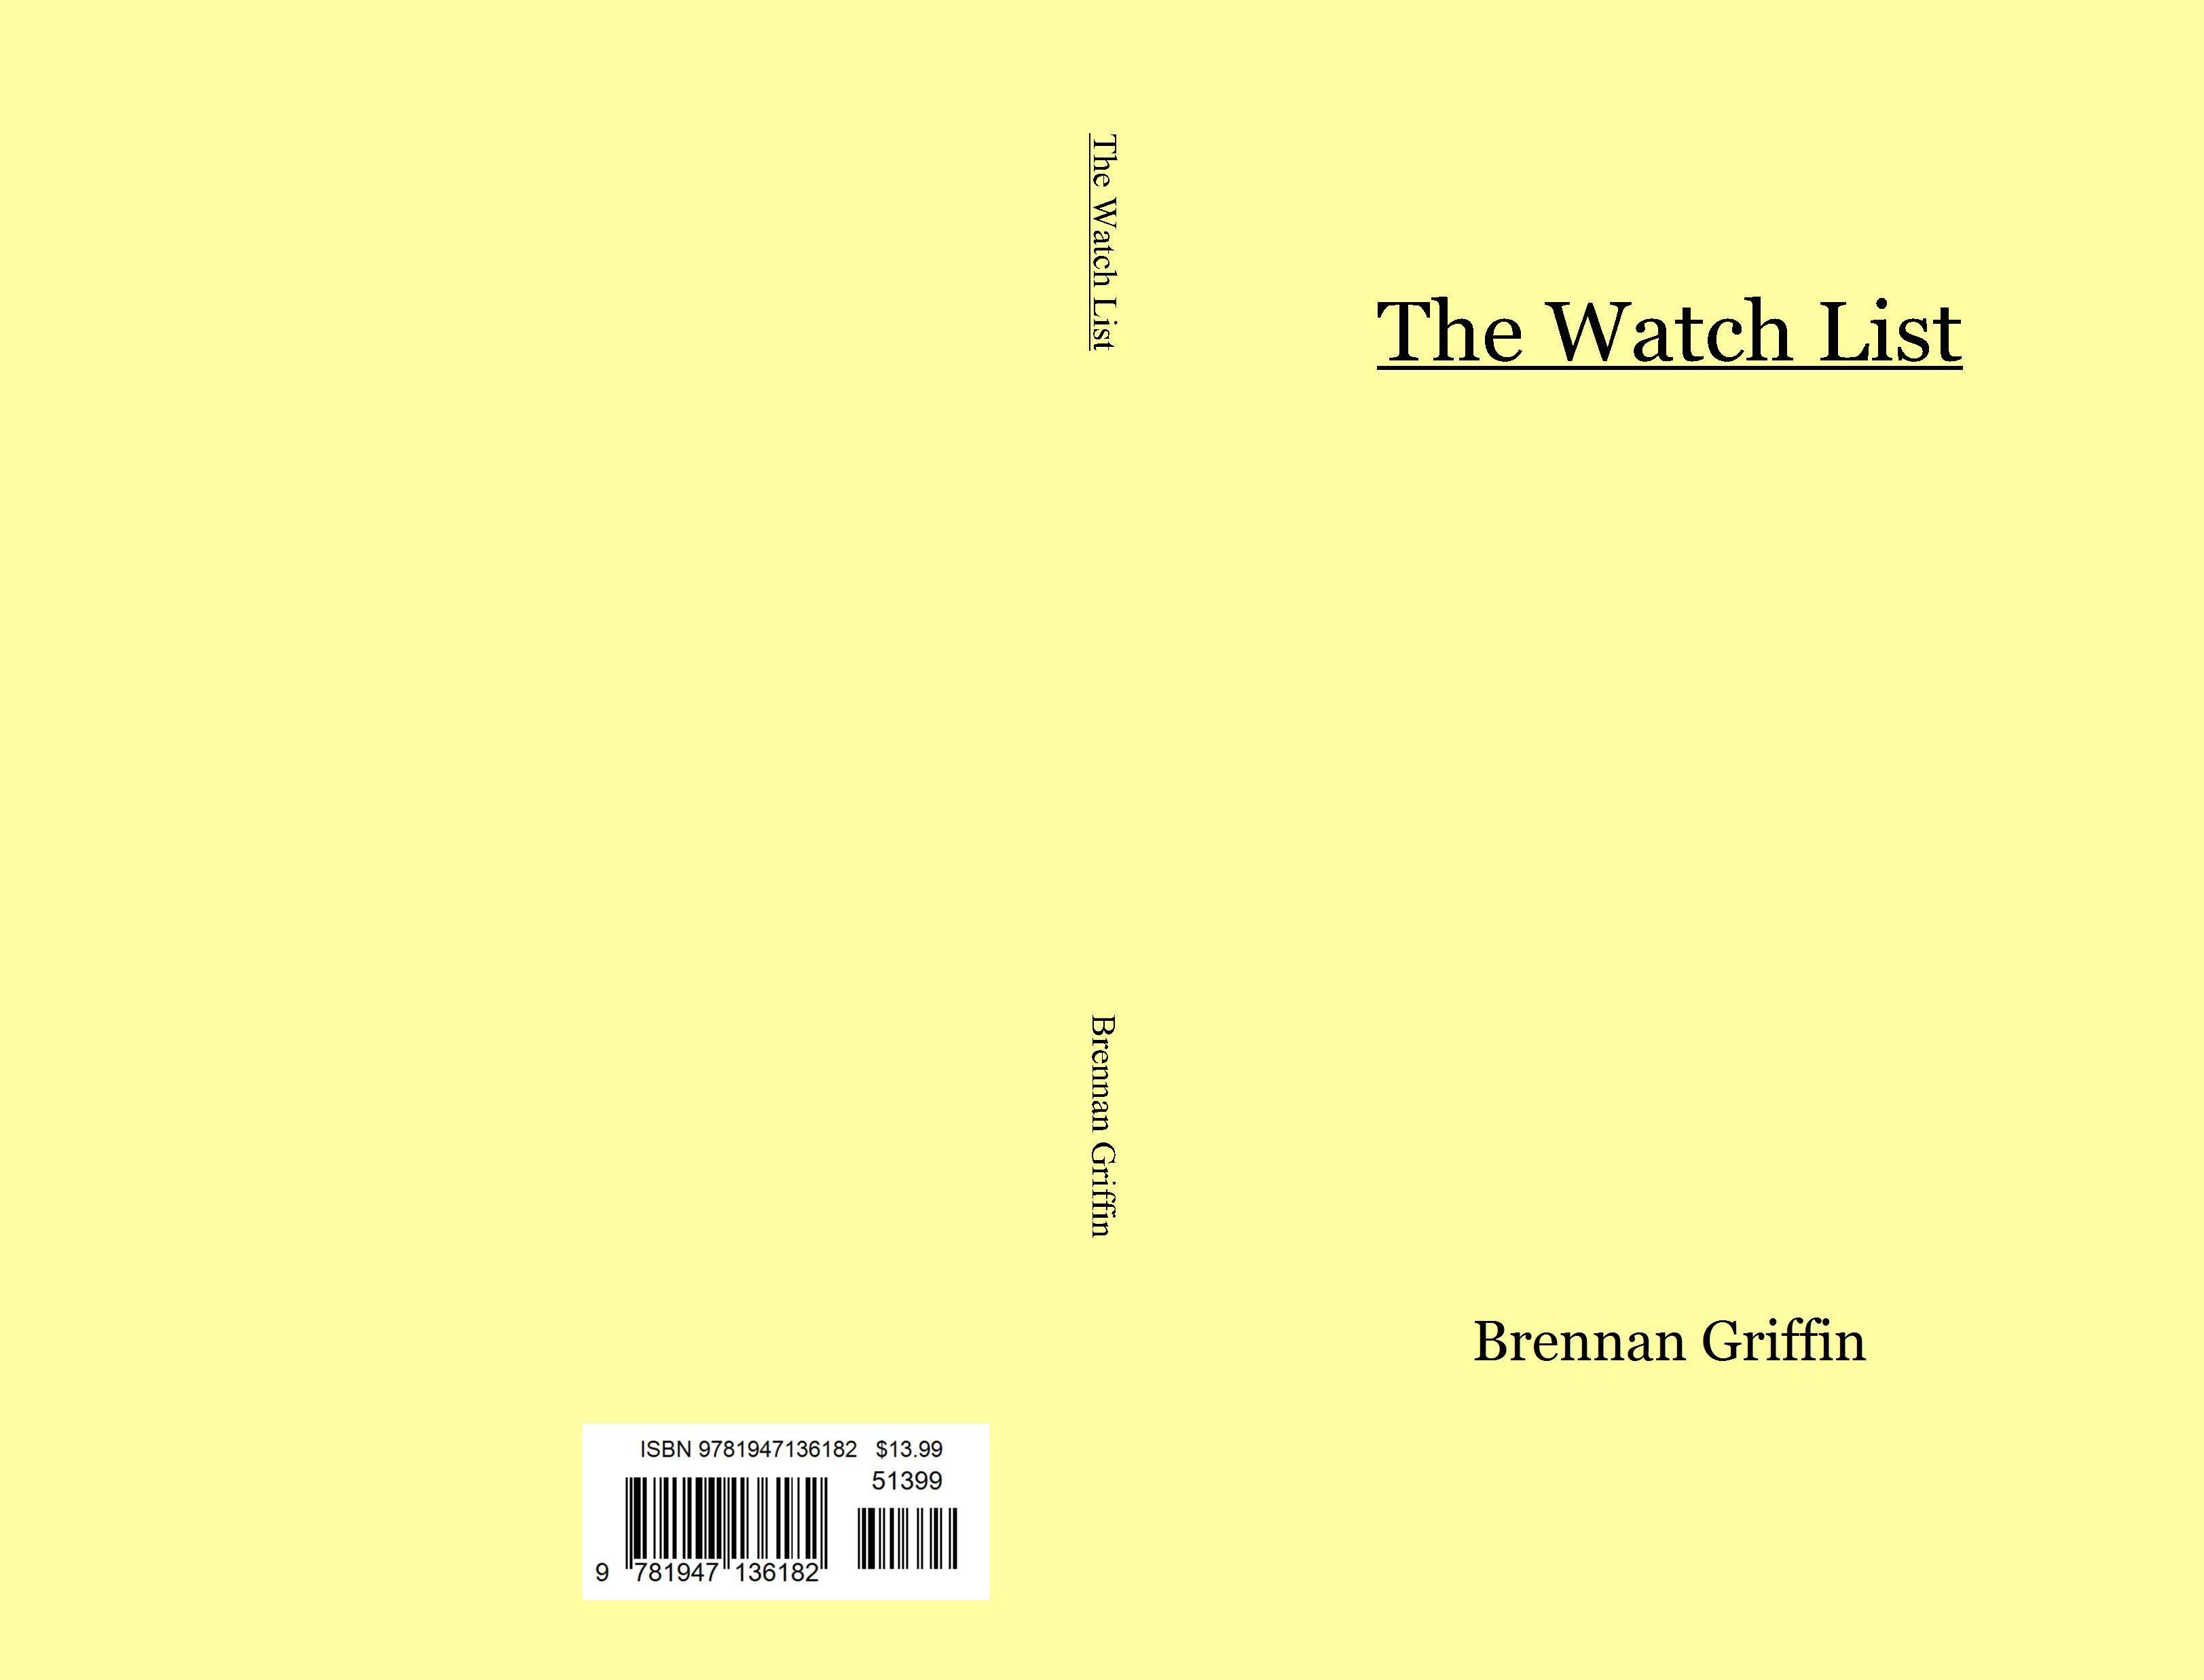 The Watch List cover image